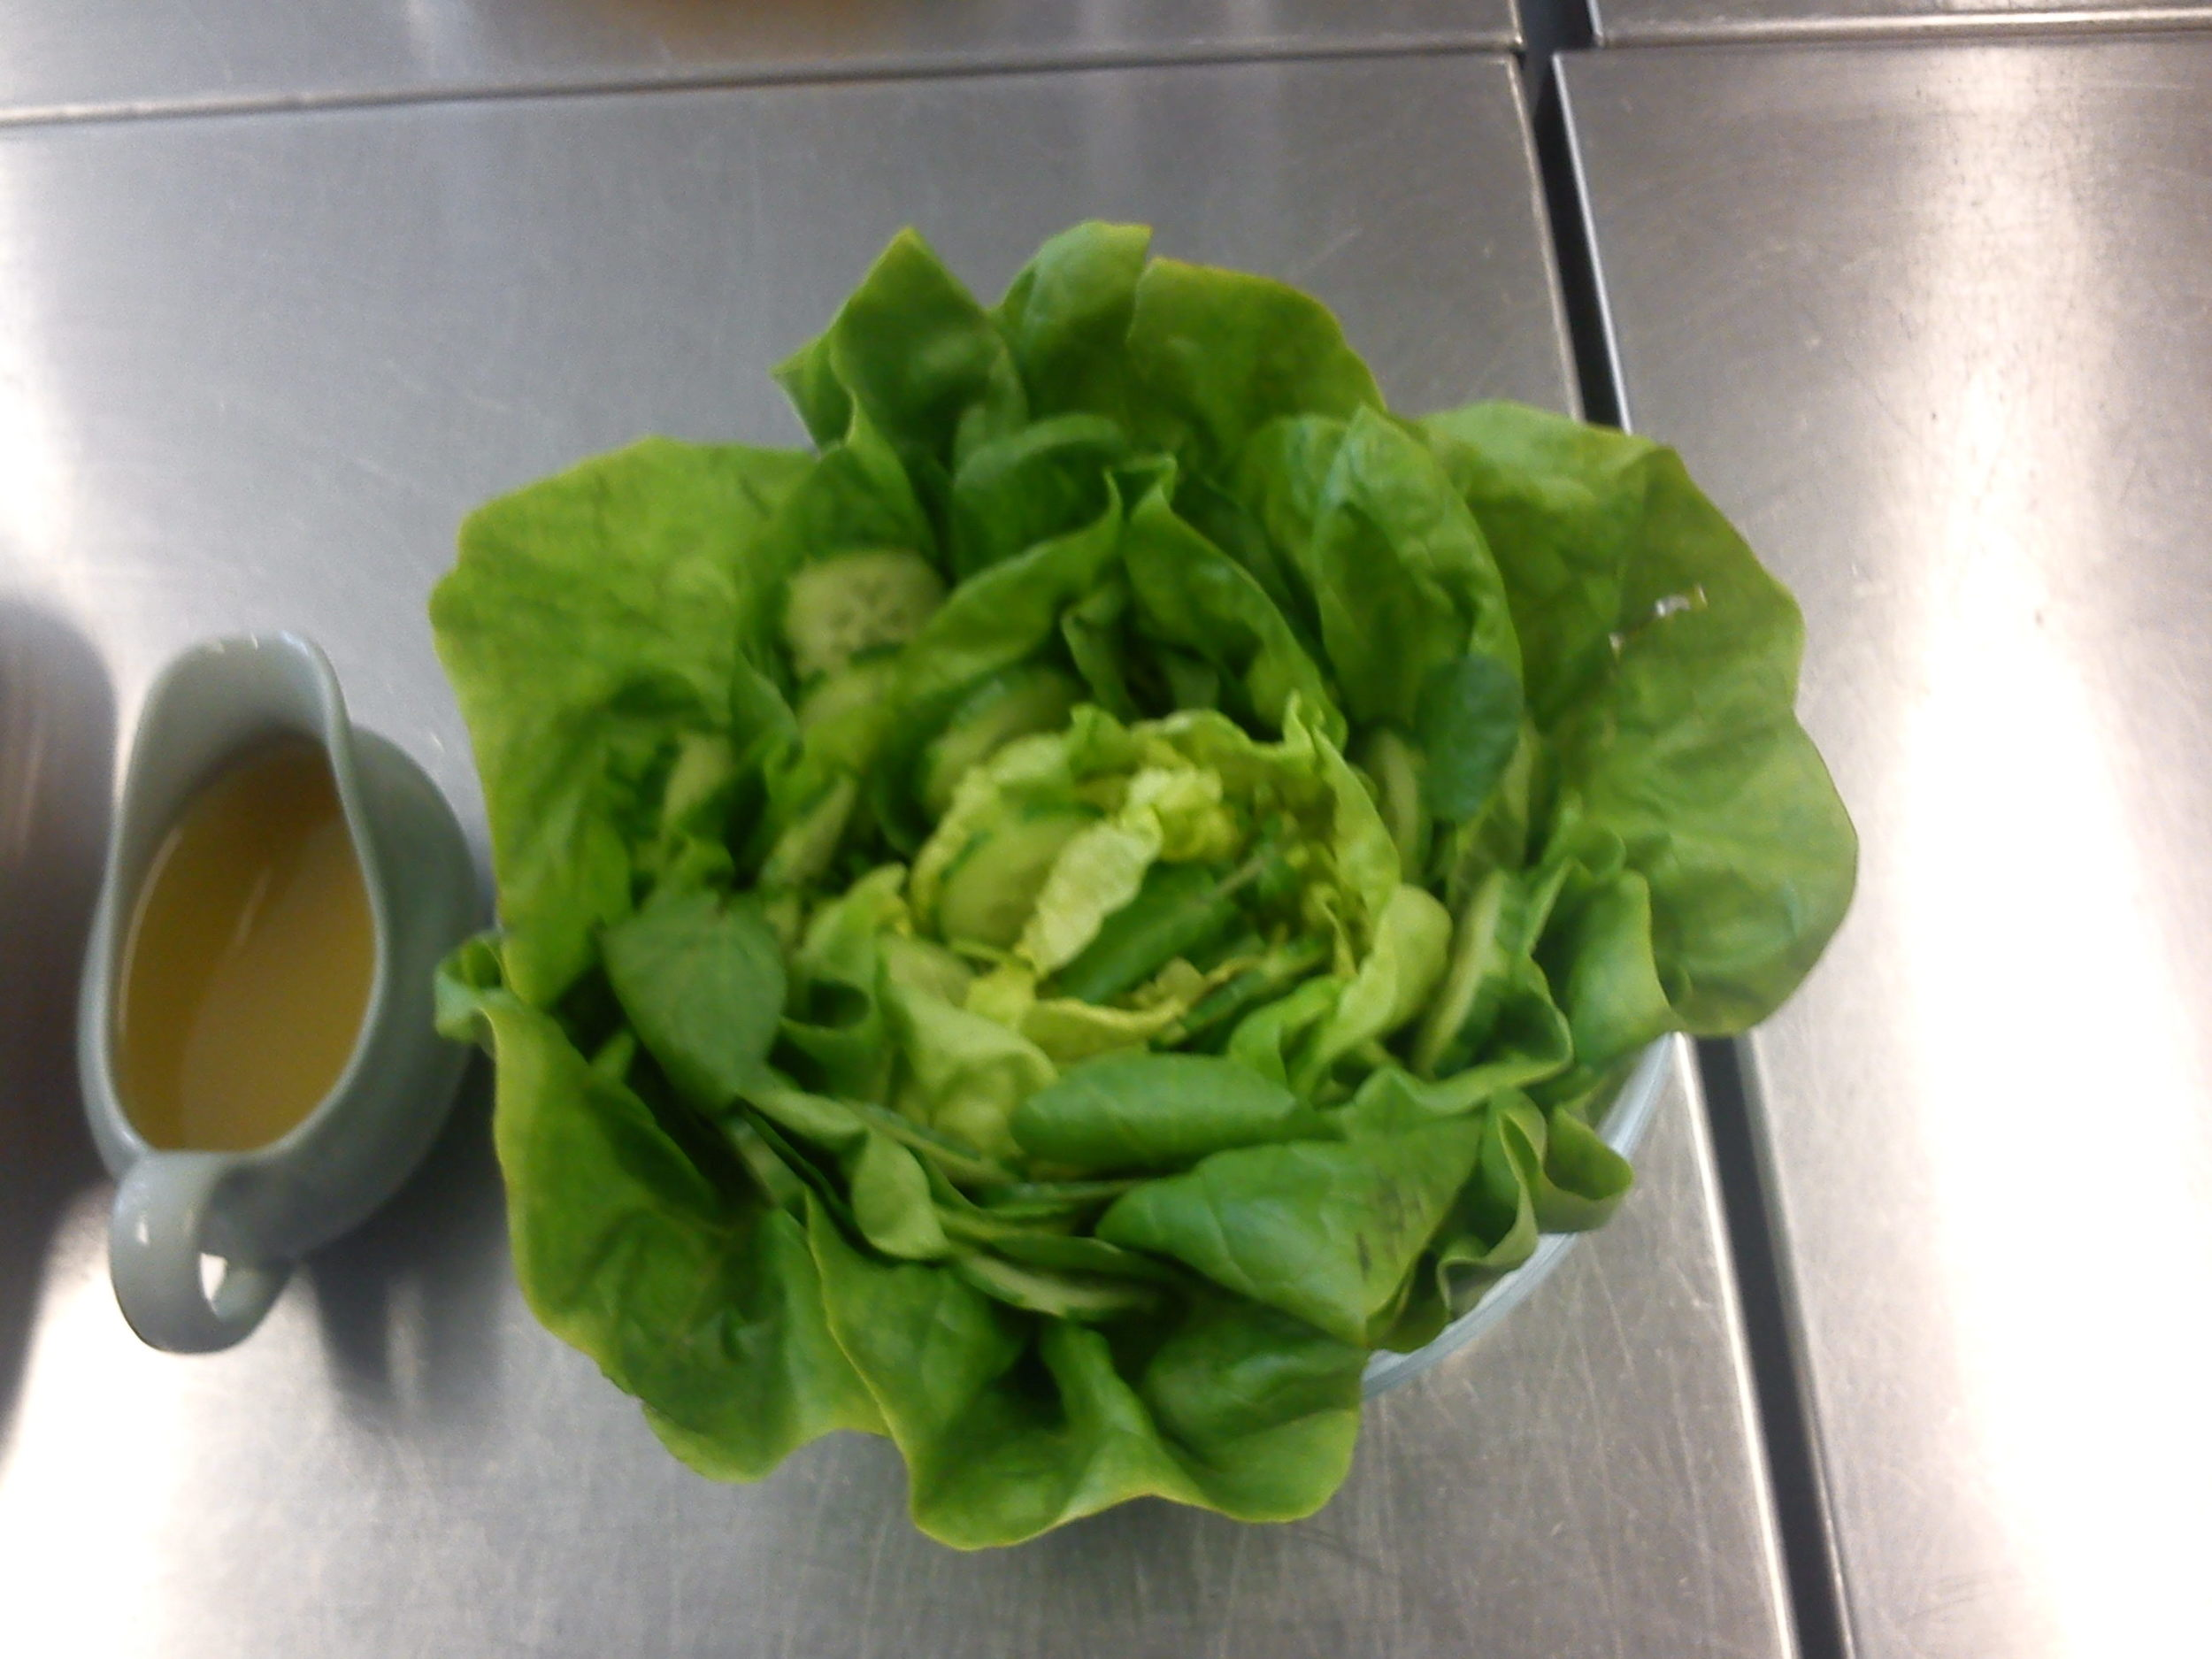 Have you ever seen a salad that looked more like a lettuce? I think not.